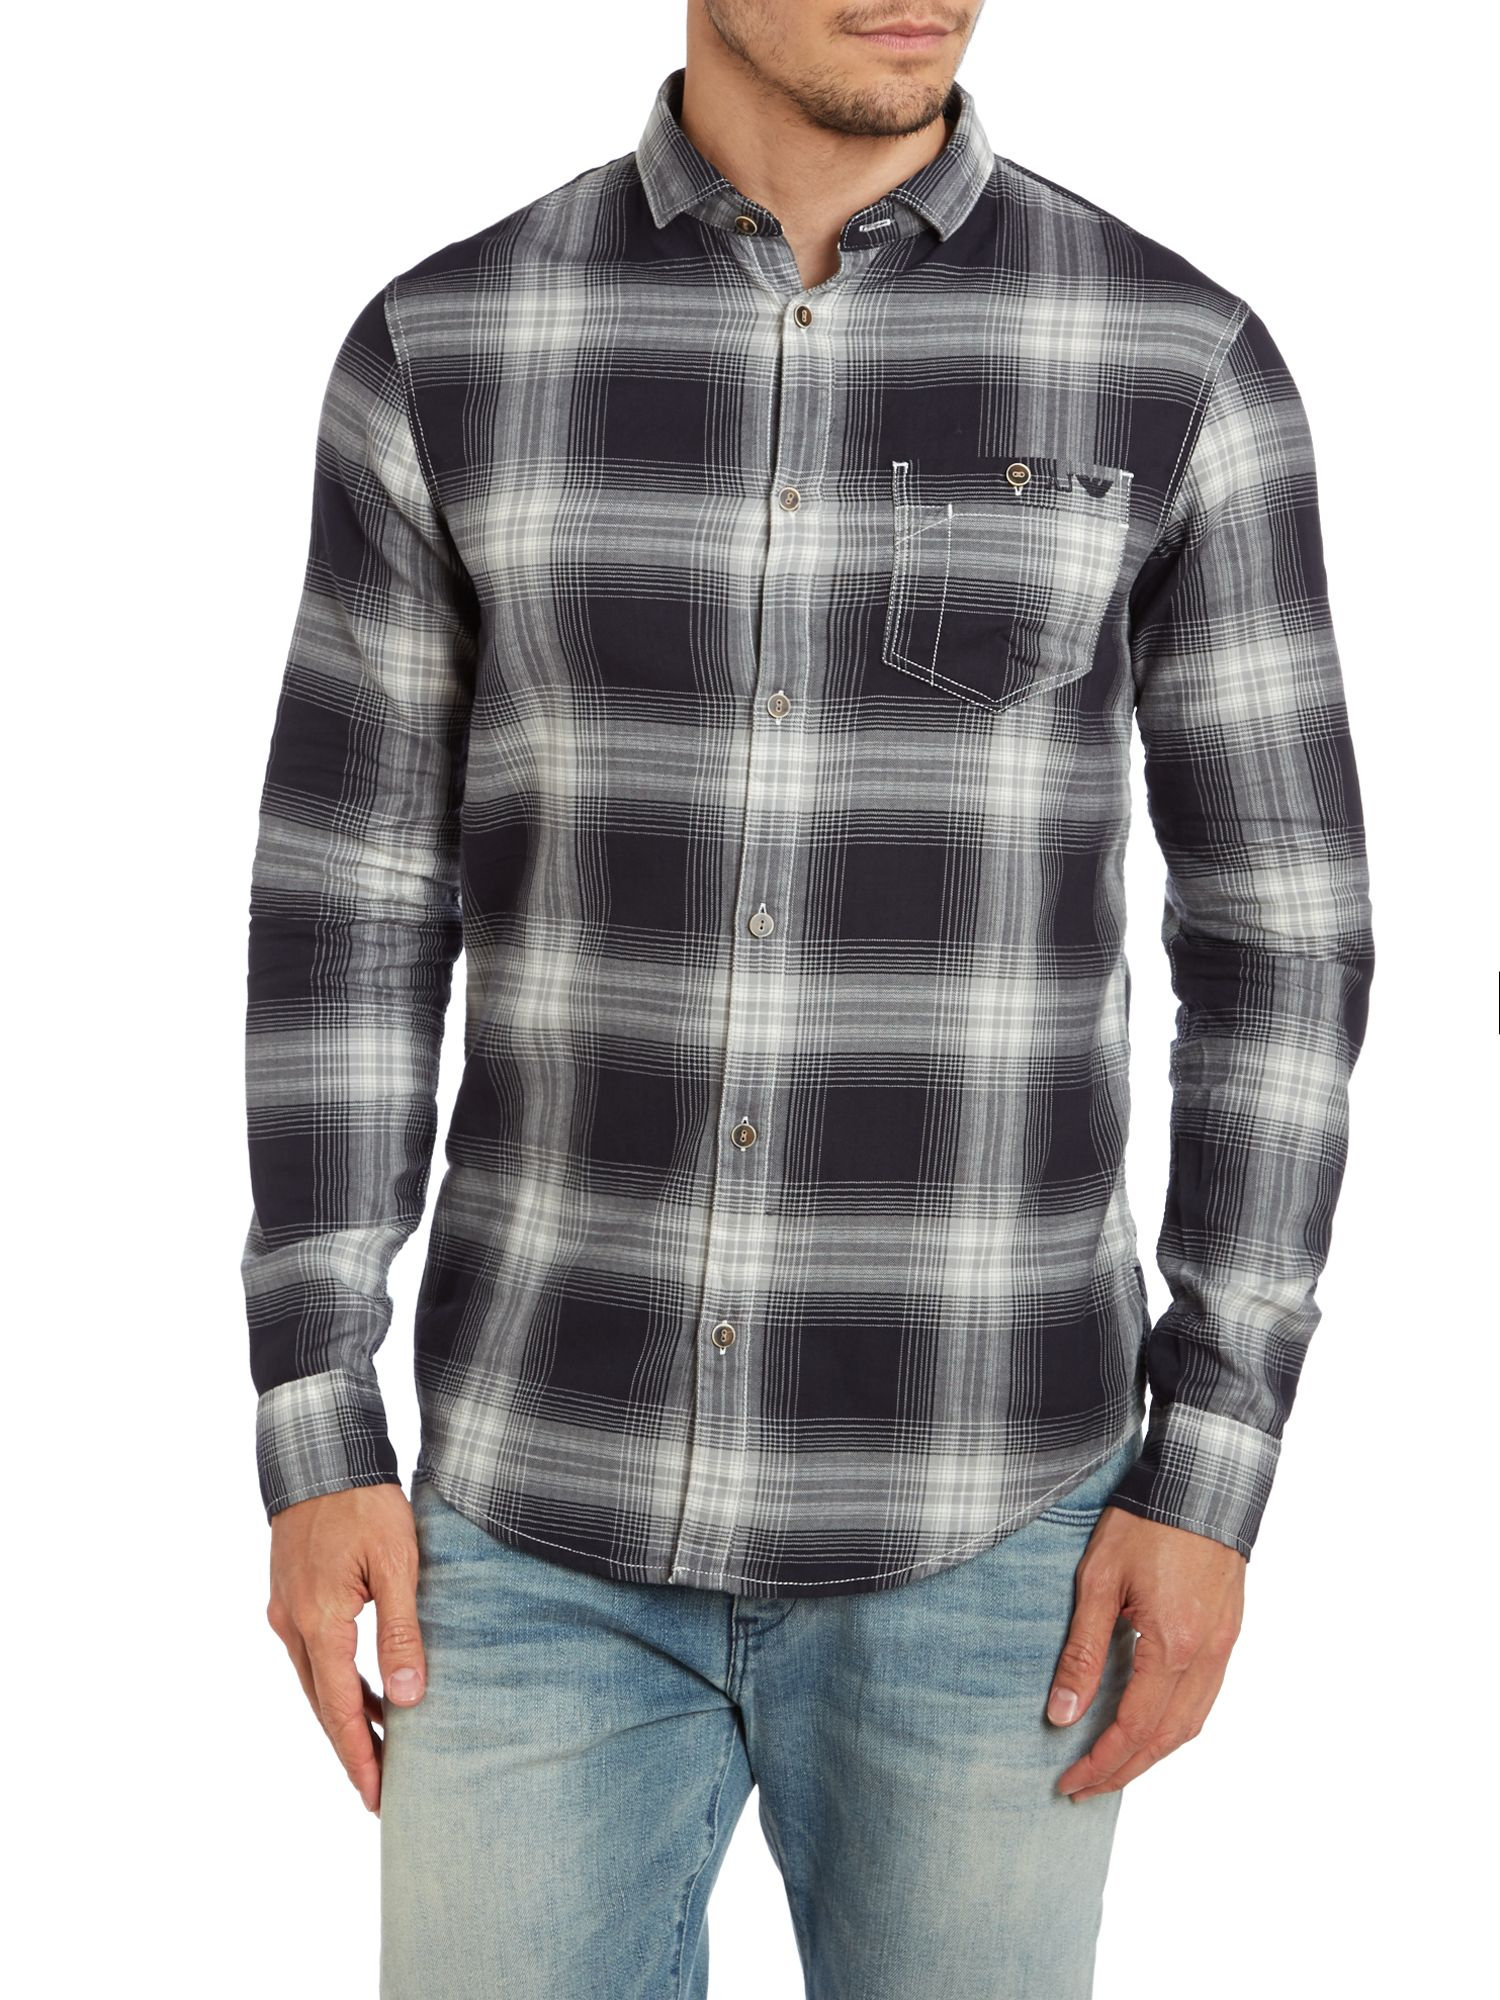 Armani Jeans Gray Checked Flannel Shirt For Men Lyst